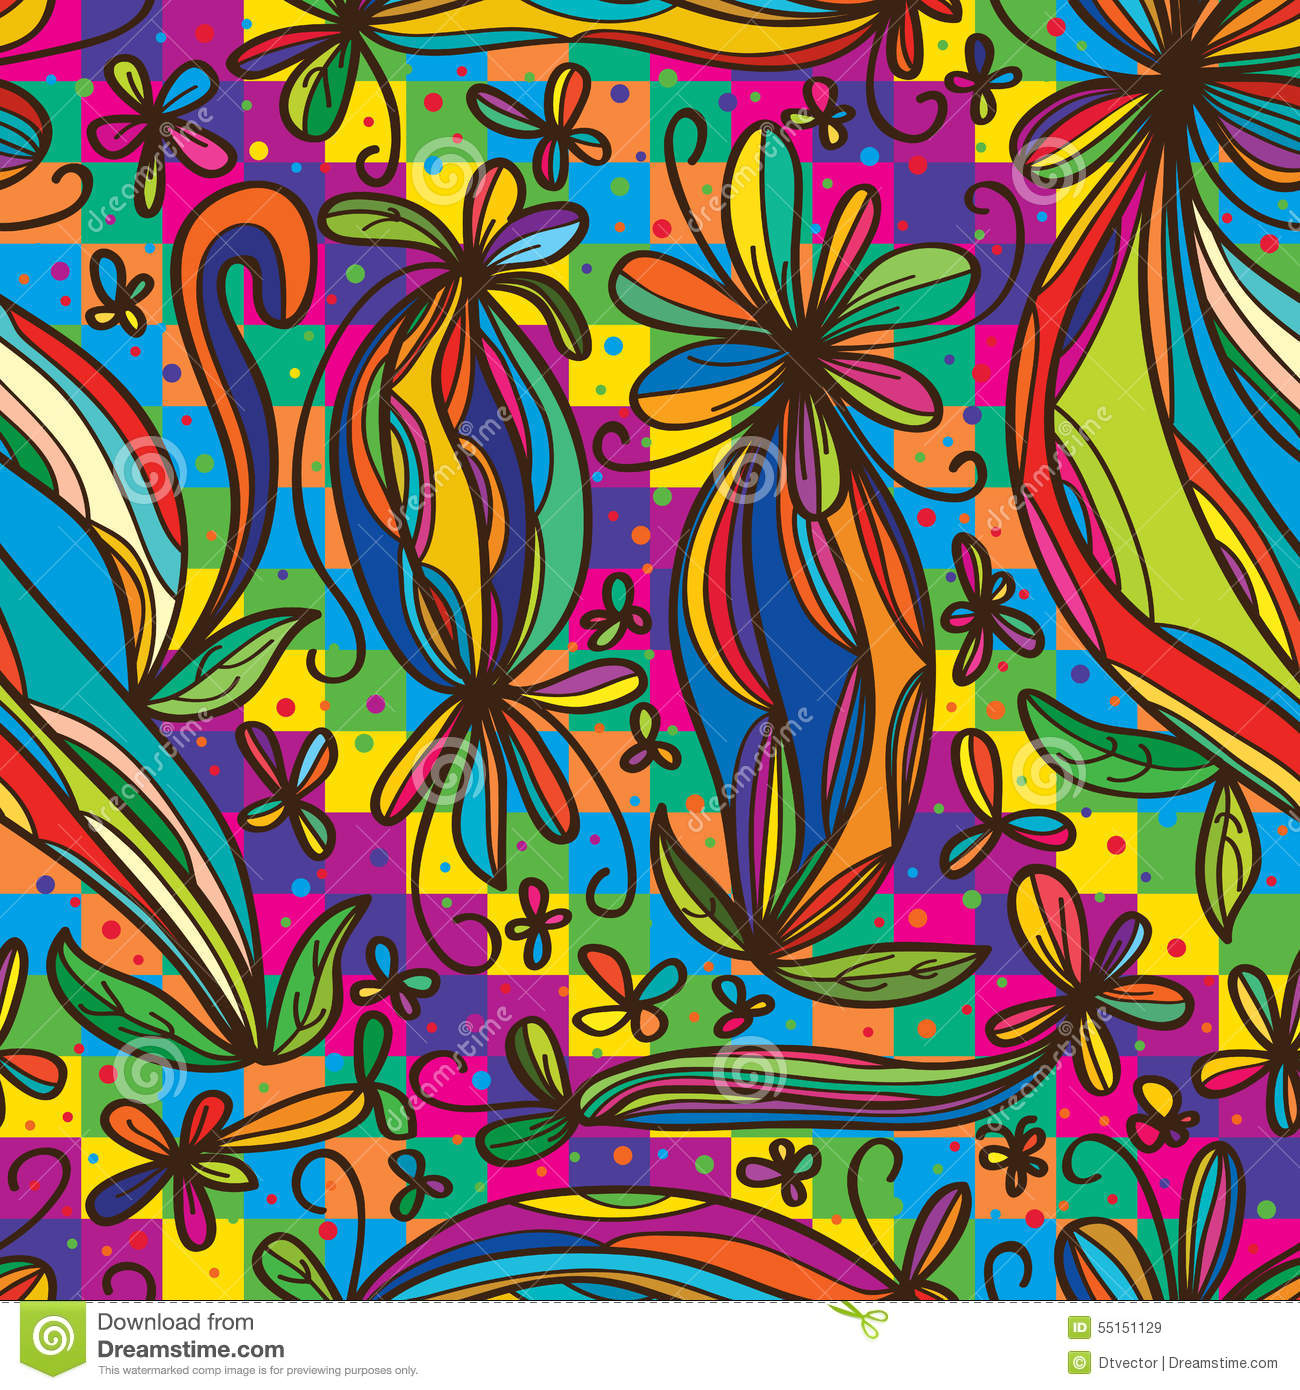 Imaginary Wallpapers Hd Flower Curl Draw Rainbow Colorful Seamless Pattern Stock